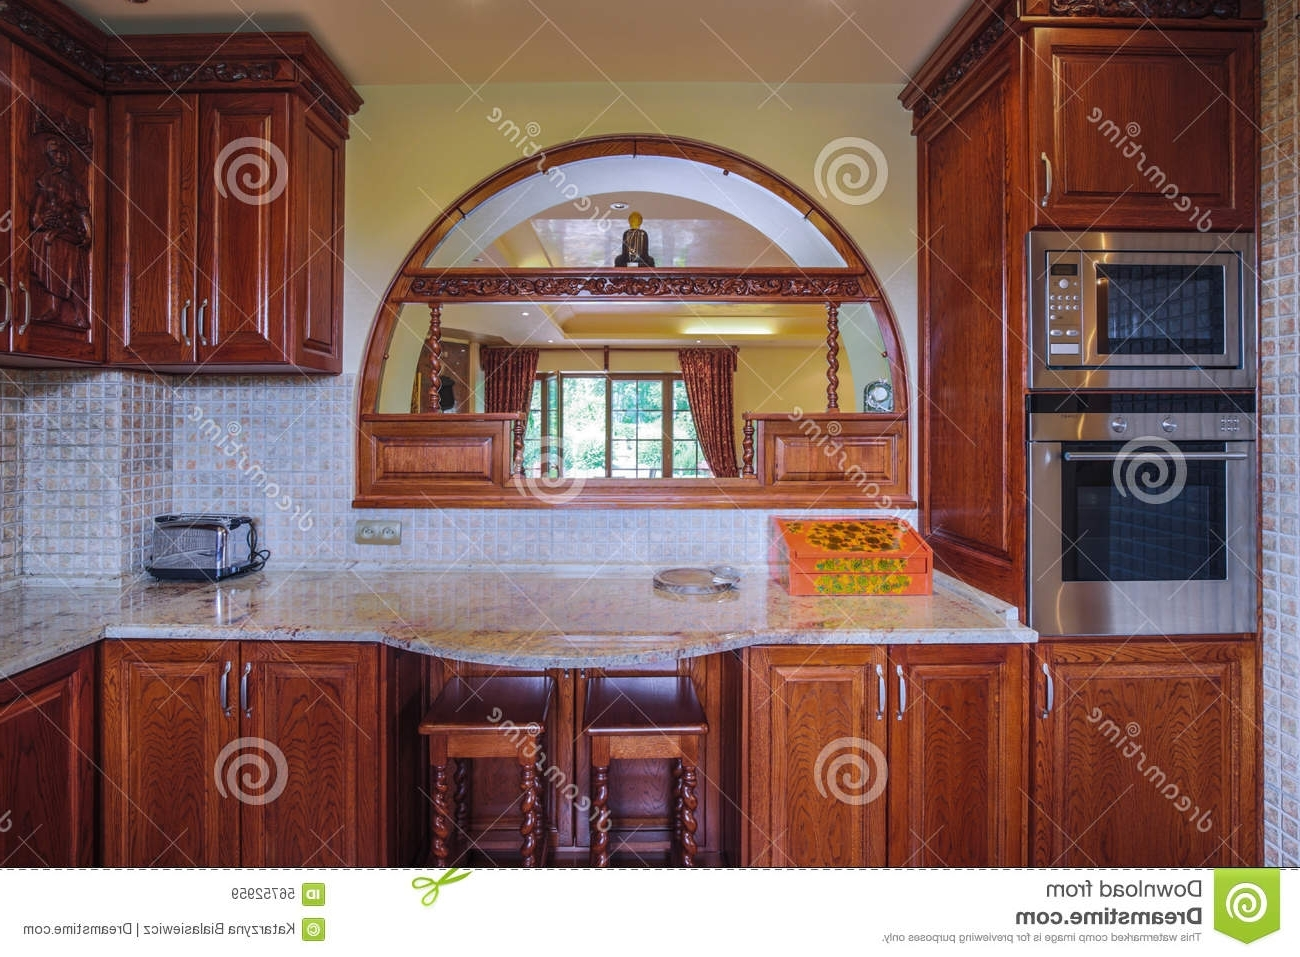 Wooden Cupboards In The Kitchen Stock Image – Image Of Cupboards Regarding 2017 Free Cupboards (View 12 of 15)